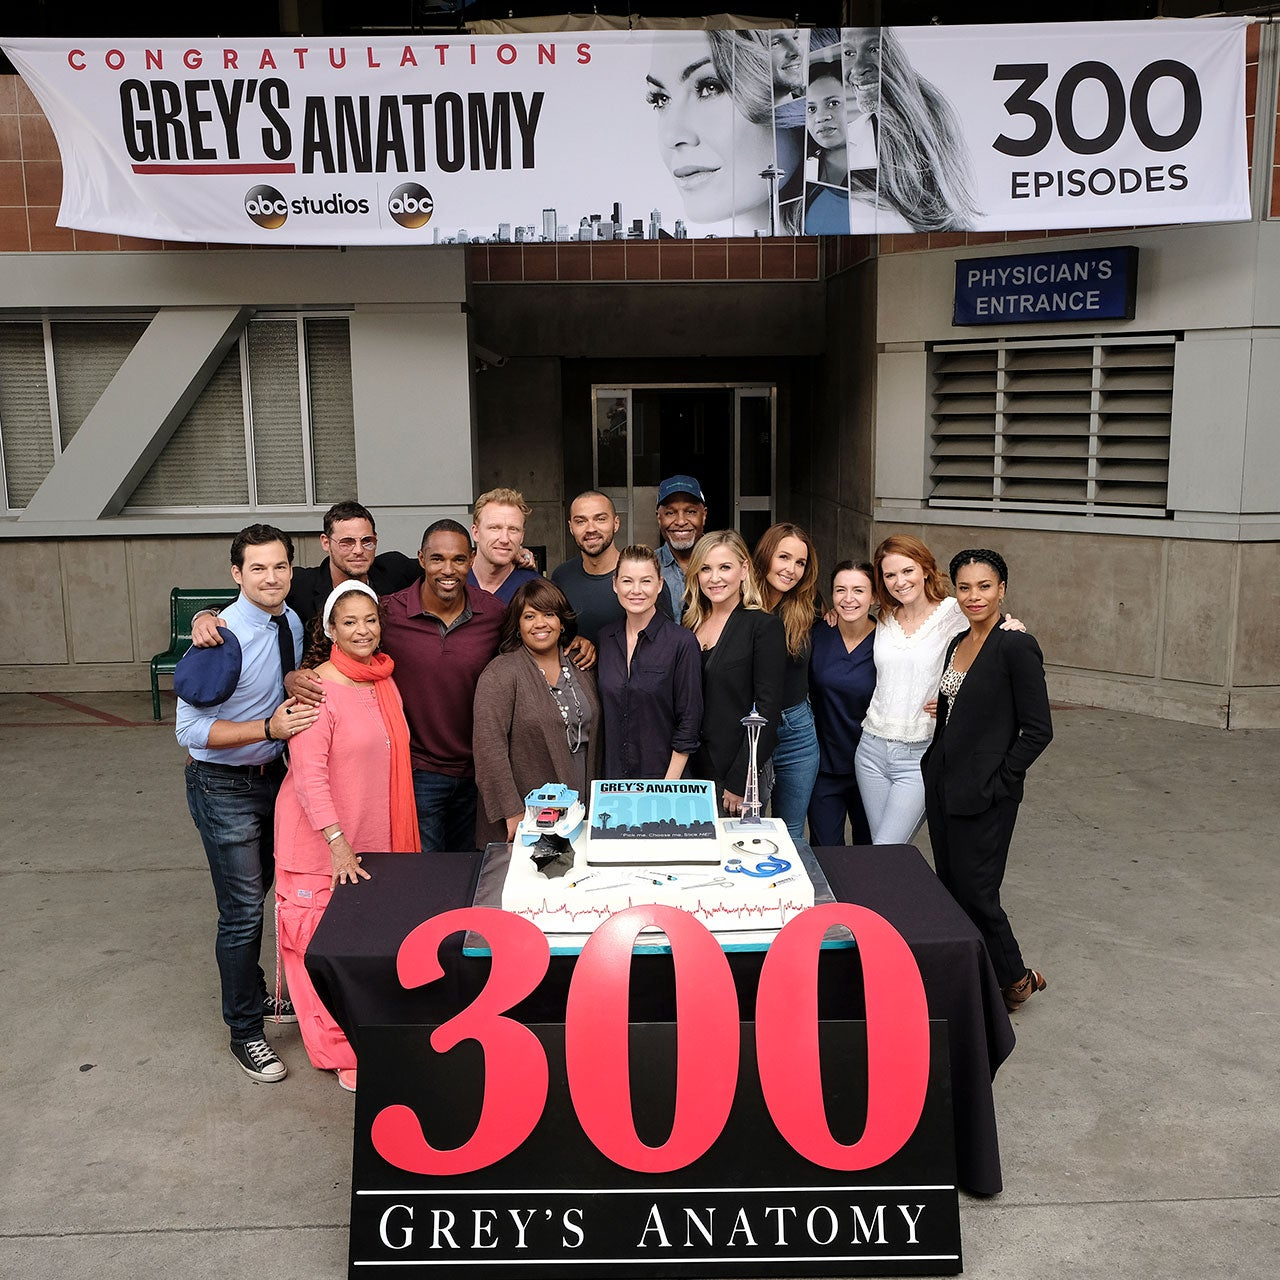 Grey's Anatomy 300th episode